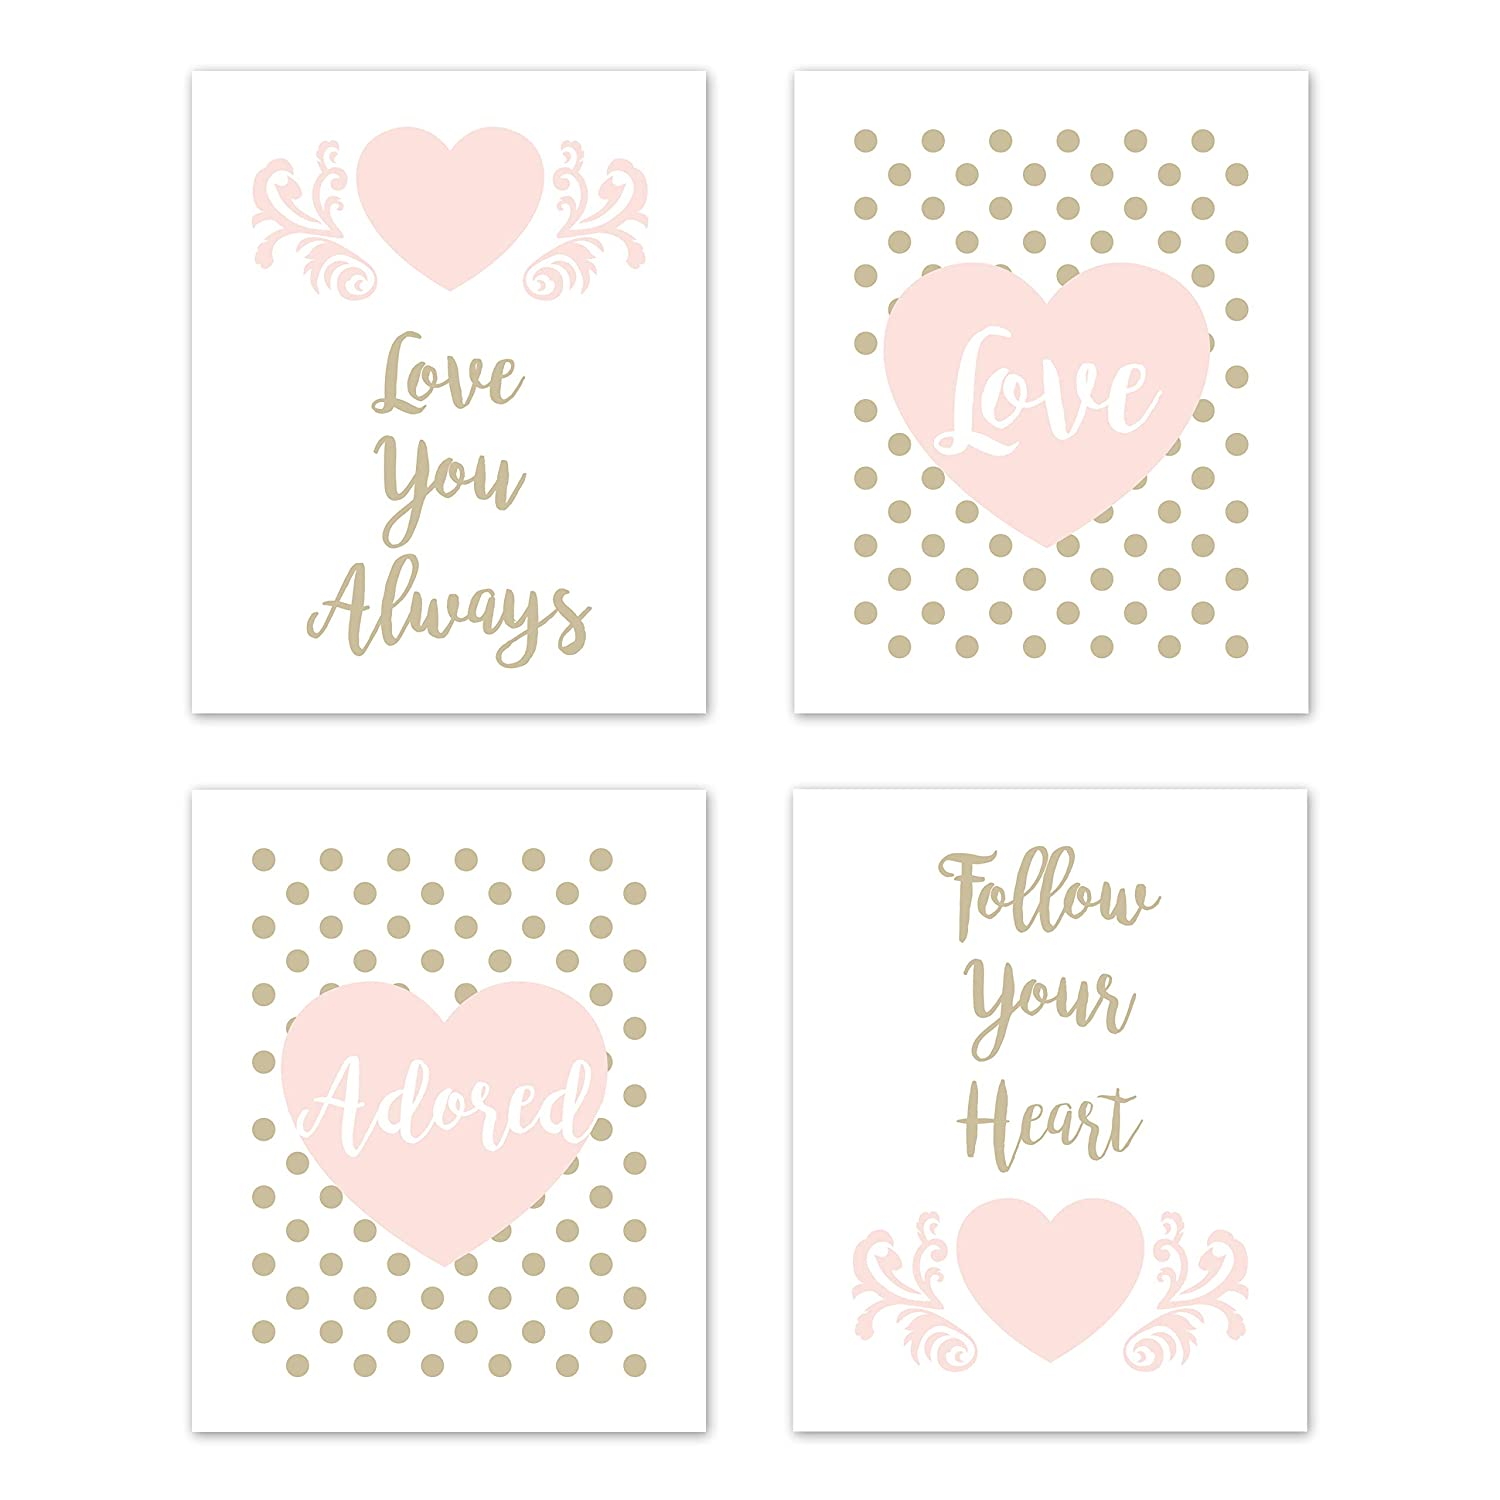 Sweet Jojo Designs Blush Pink, Gold and White Polka Dot Heart Wall Art Prints Room Decor for Baby, Nursery, and Kids for Amelia Collection - Set of 4 - Love You Always, Follow Your Heart